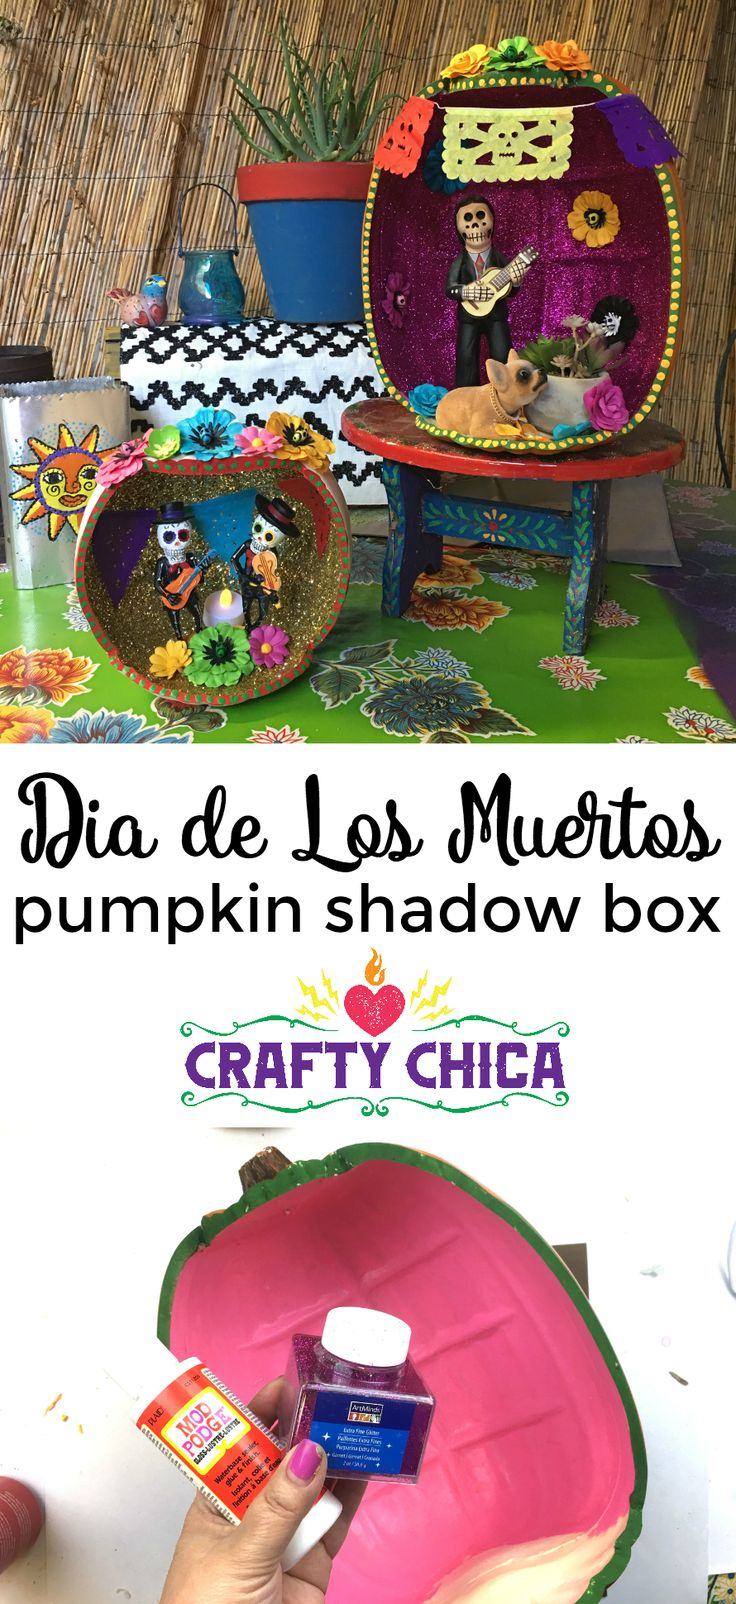 Follow me!http://www.craftychica.com/2016/09/foam-pumpkin-shadow-box/diy-pumpkin-shadow-box/Follow Peace, love, and glitter! Kathy  Click here to join my glittery monthly newsletter, and here to subscribe to my YouTube channel!